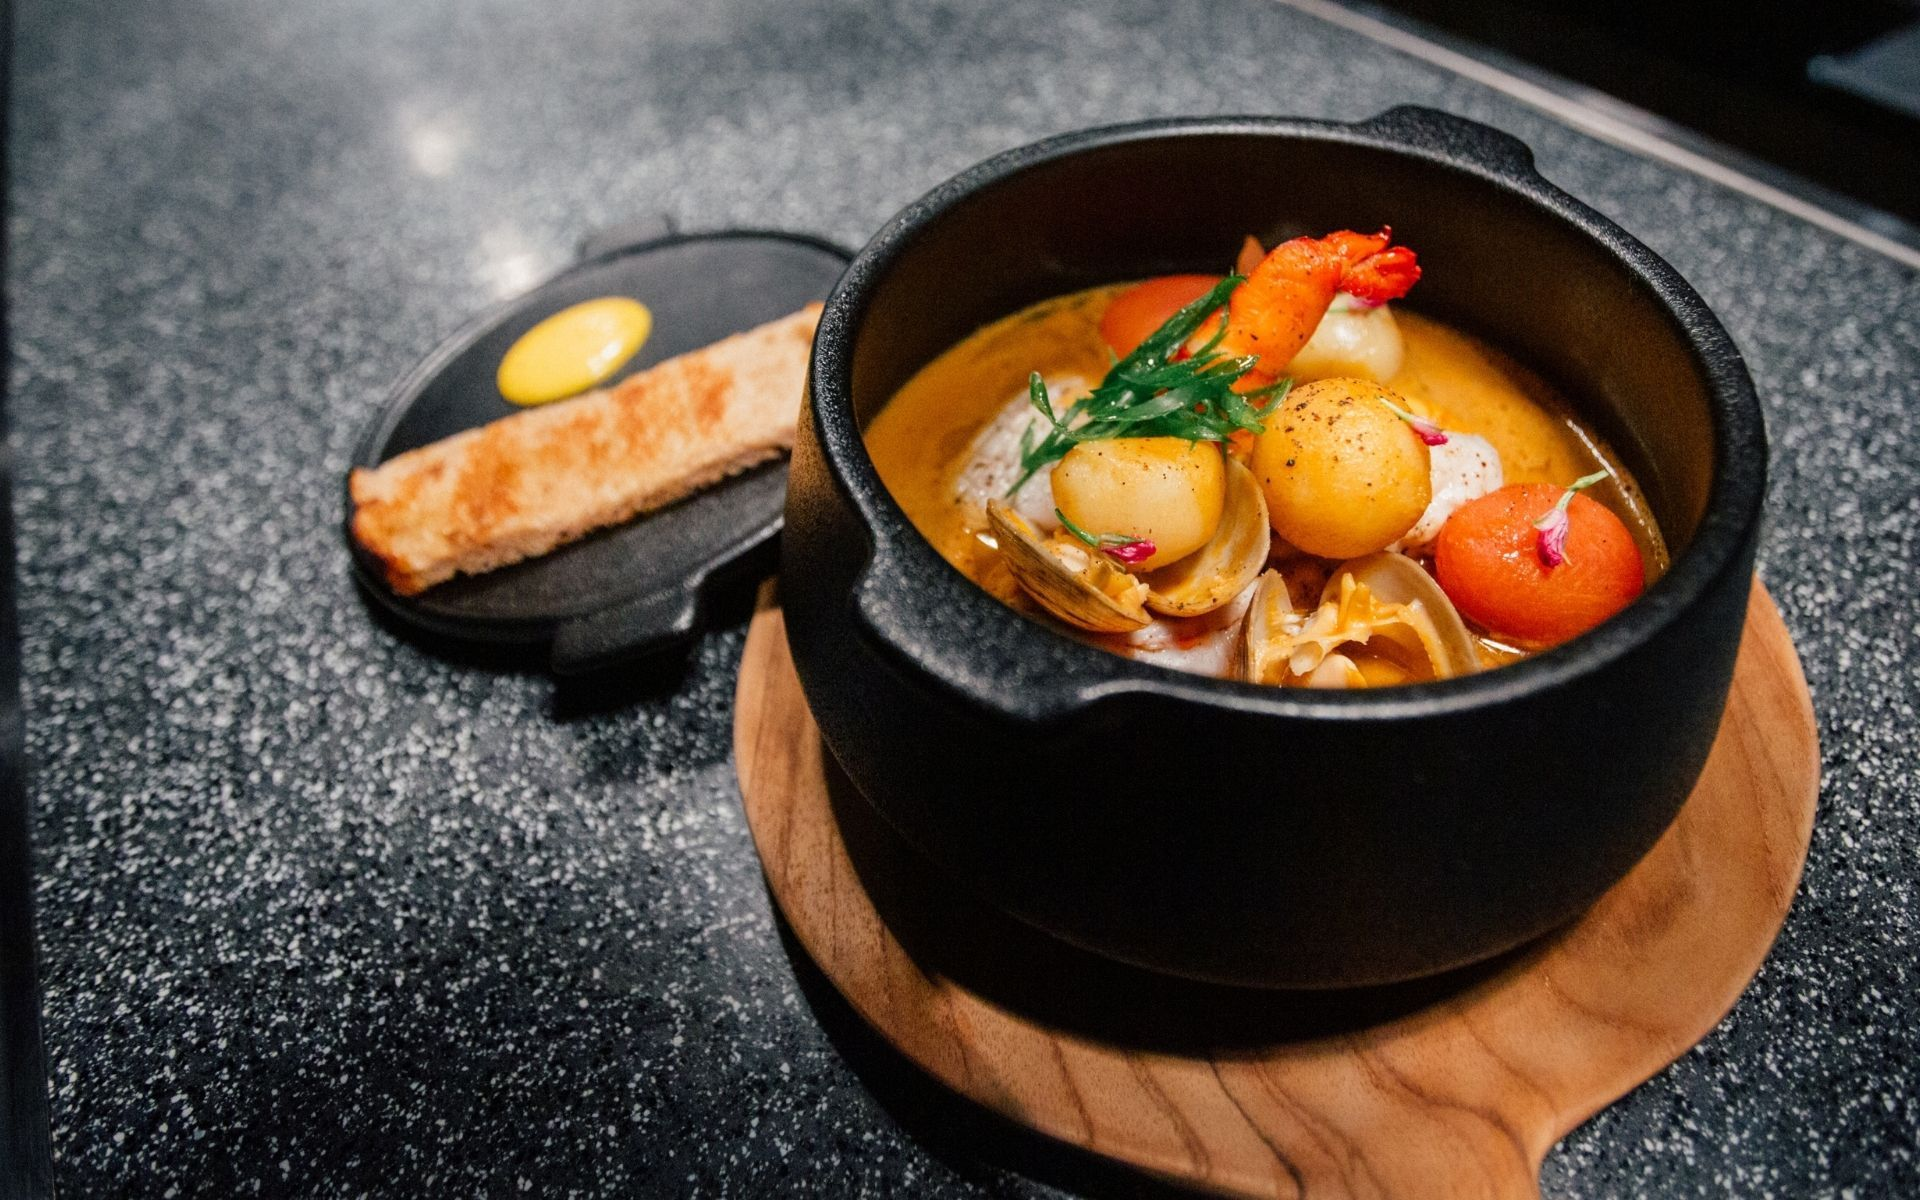 Brimming with fresh ingredients, the seafood bouillabaisse at Ambara is wonderfully authentic